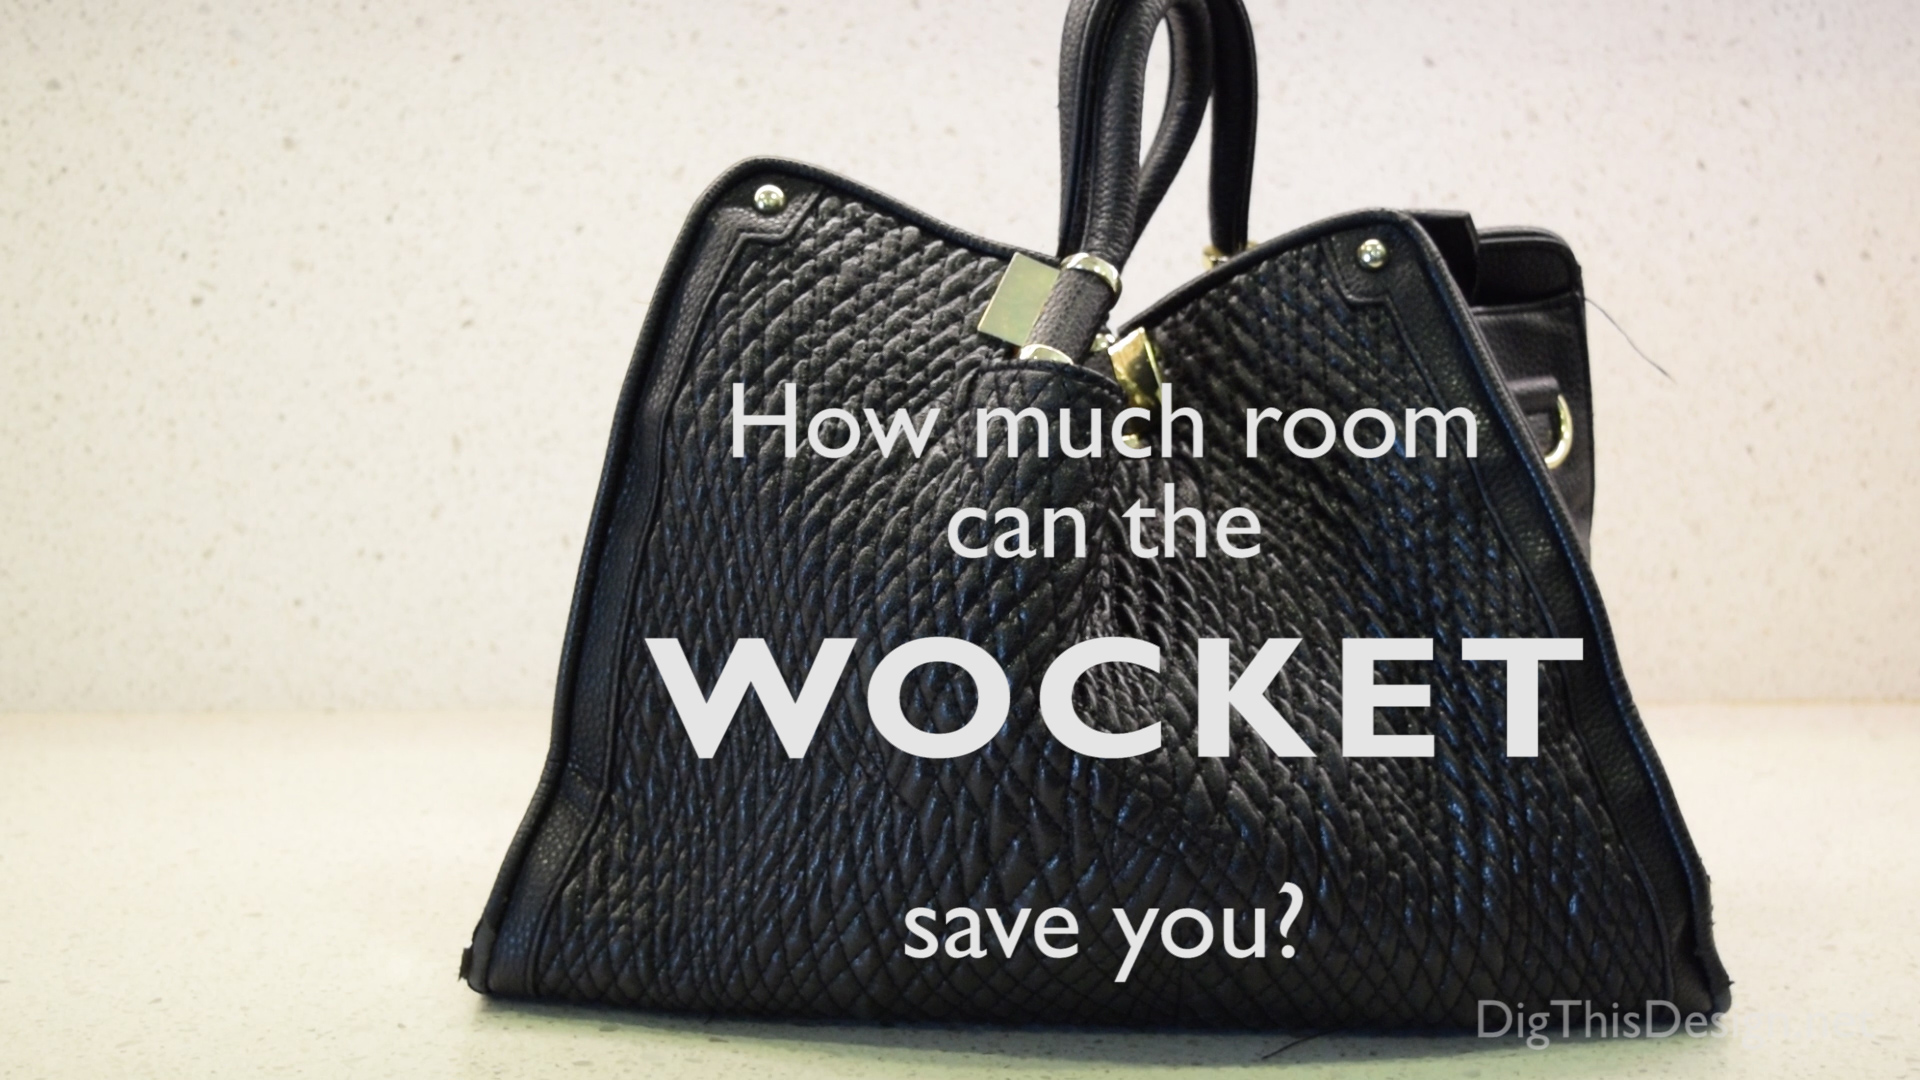 Wocket wallet accessories all the best accessories in 2018 for Save room net